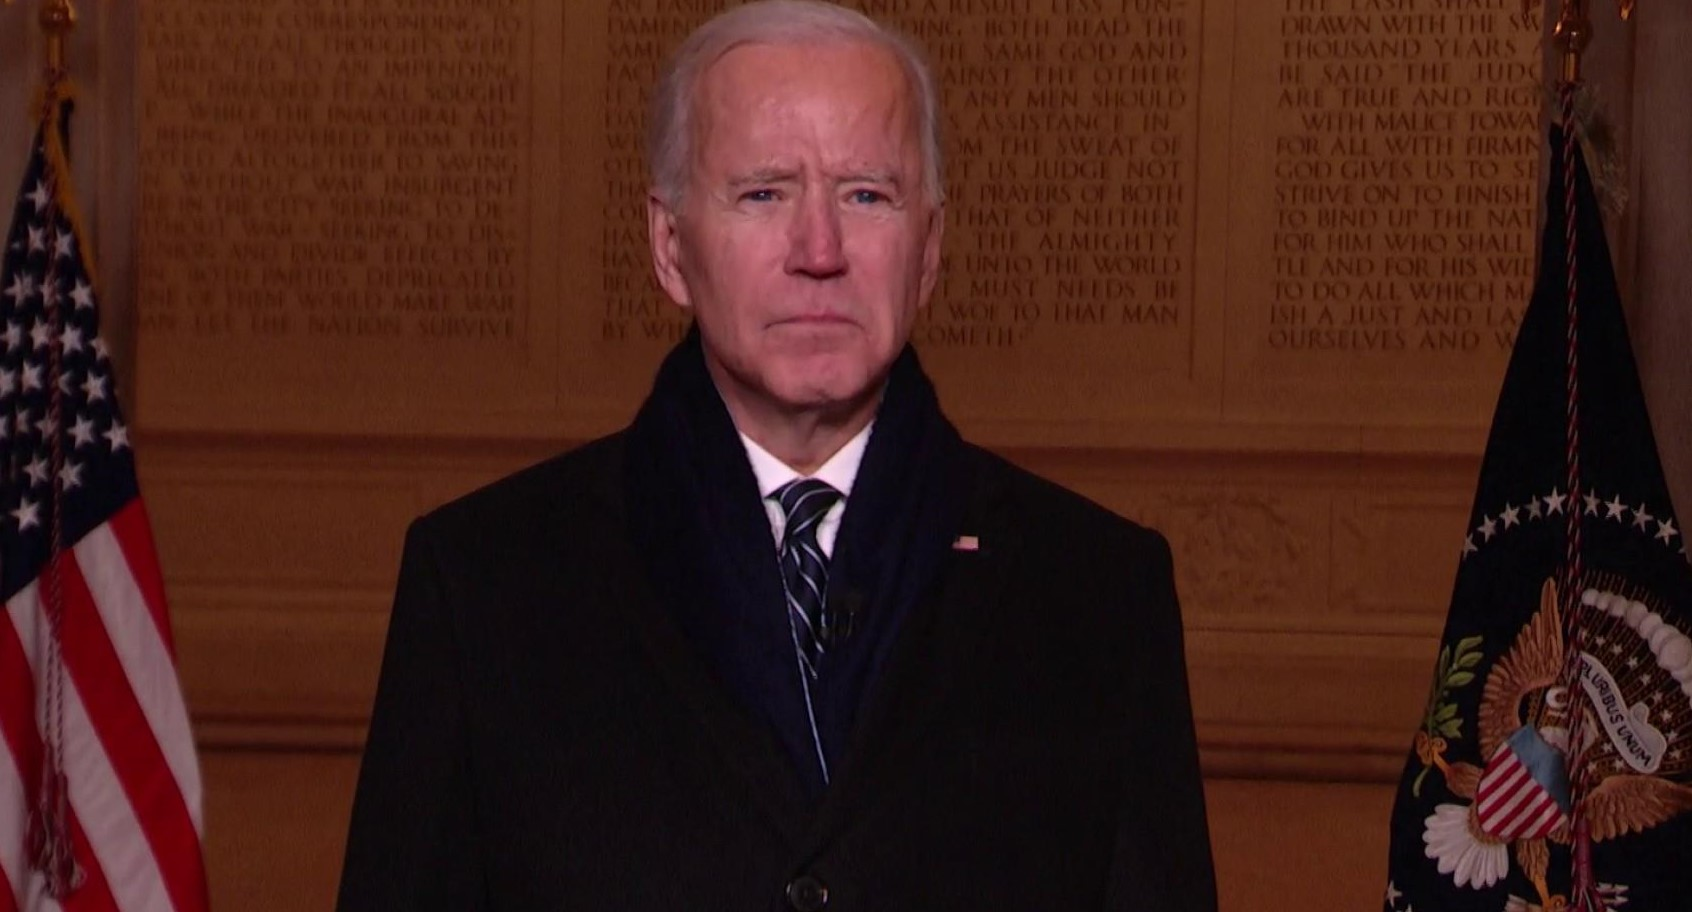 Joe Biden Caught on Video and It's Fully DOCUMENTED... IMPEACH HIM NOW